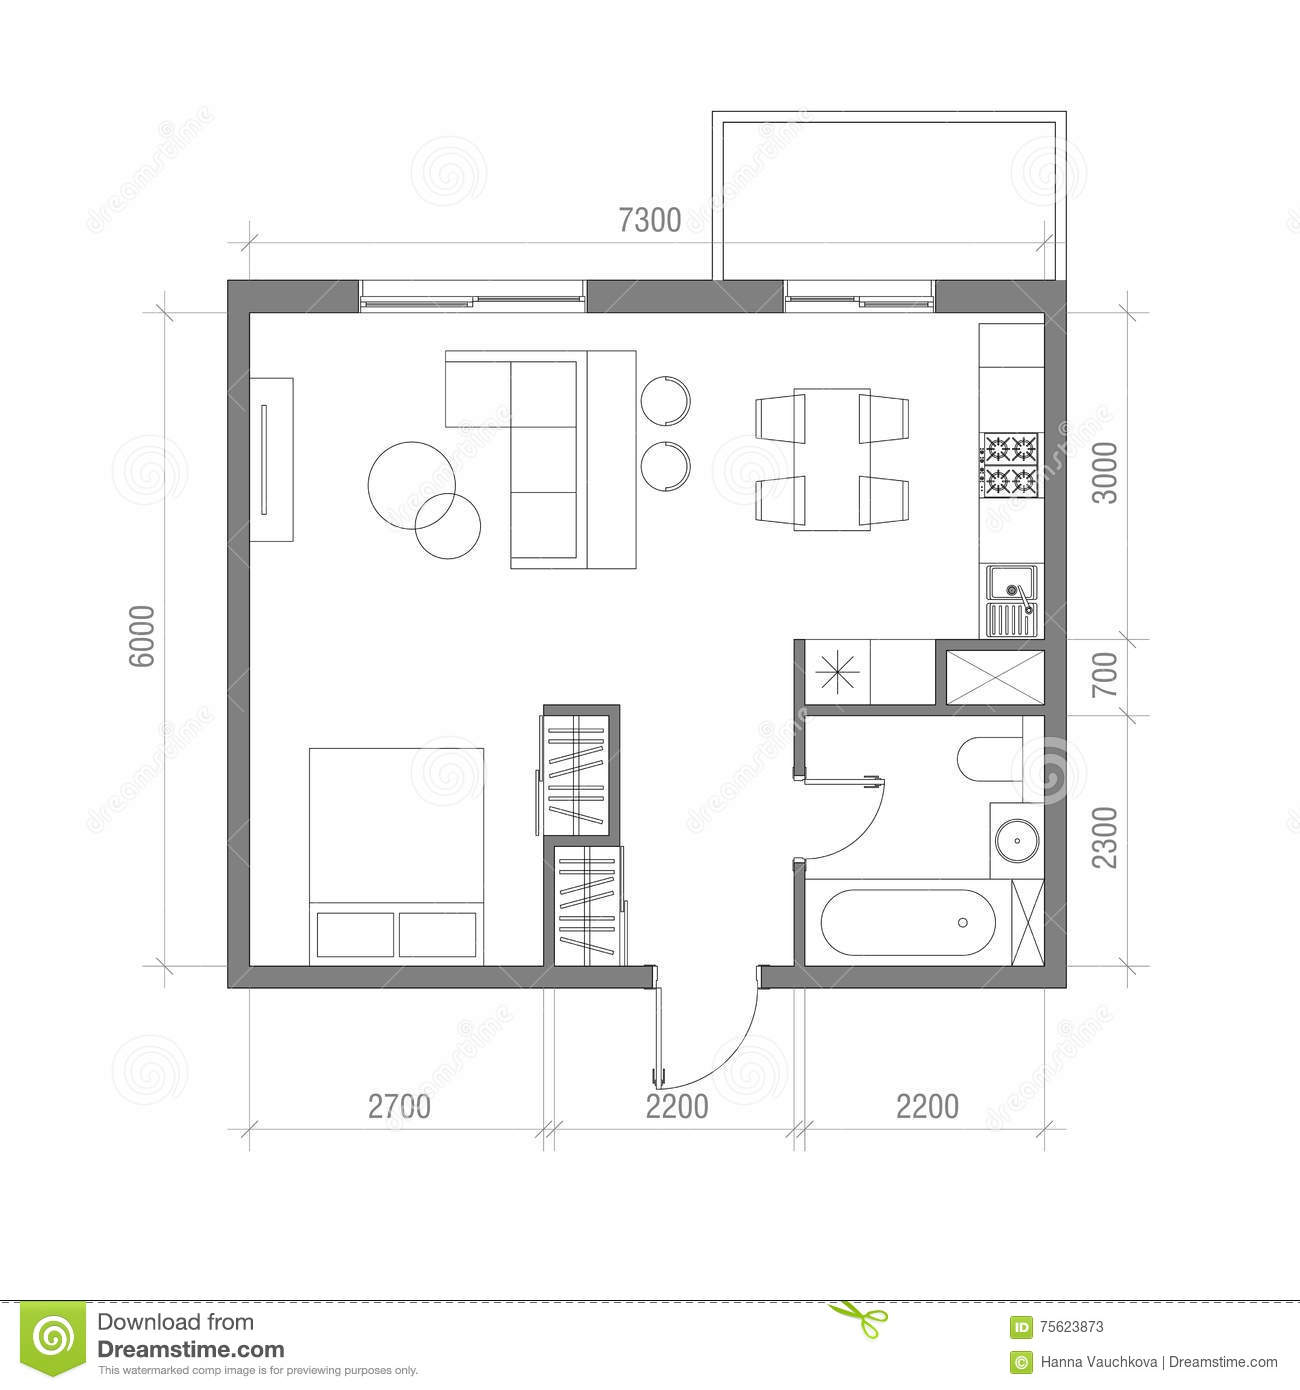 Architectural Floor Plan With Dimensions Studio Apartment